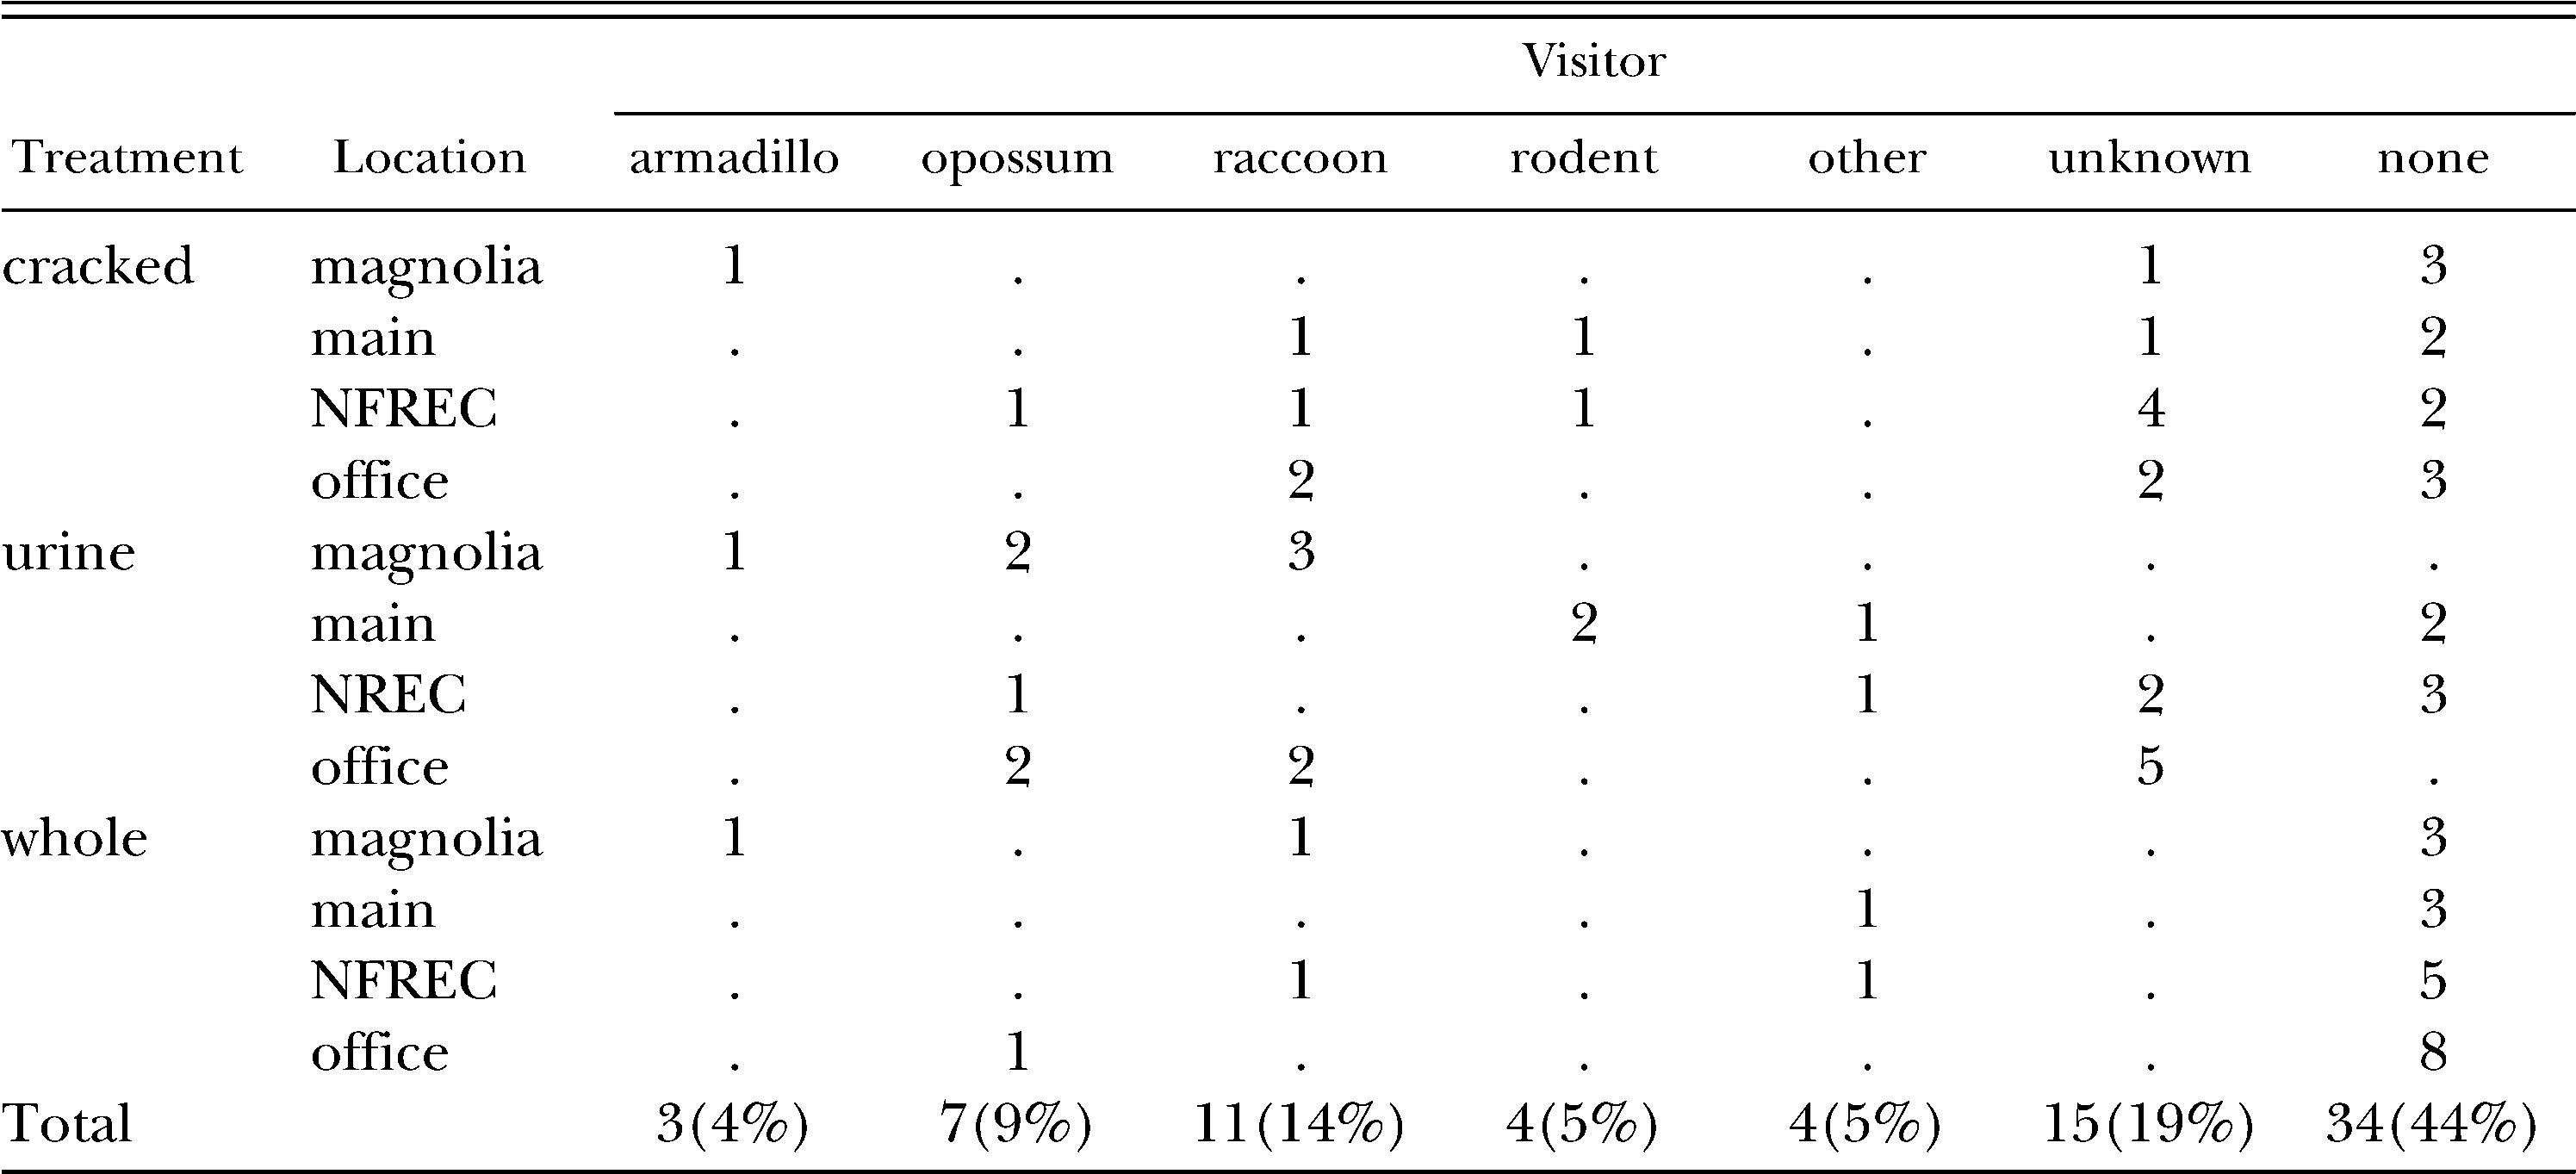 An Evaluation of the Nine-banded Armadillo as Predators of